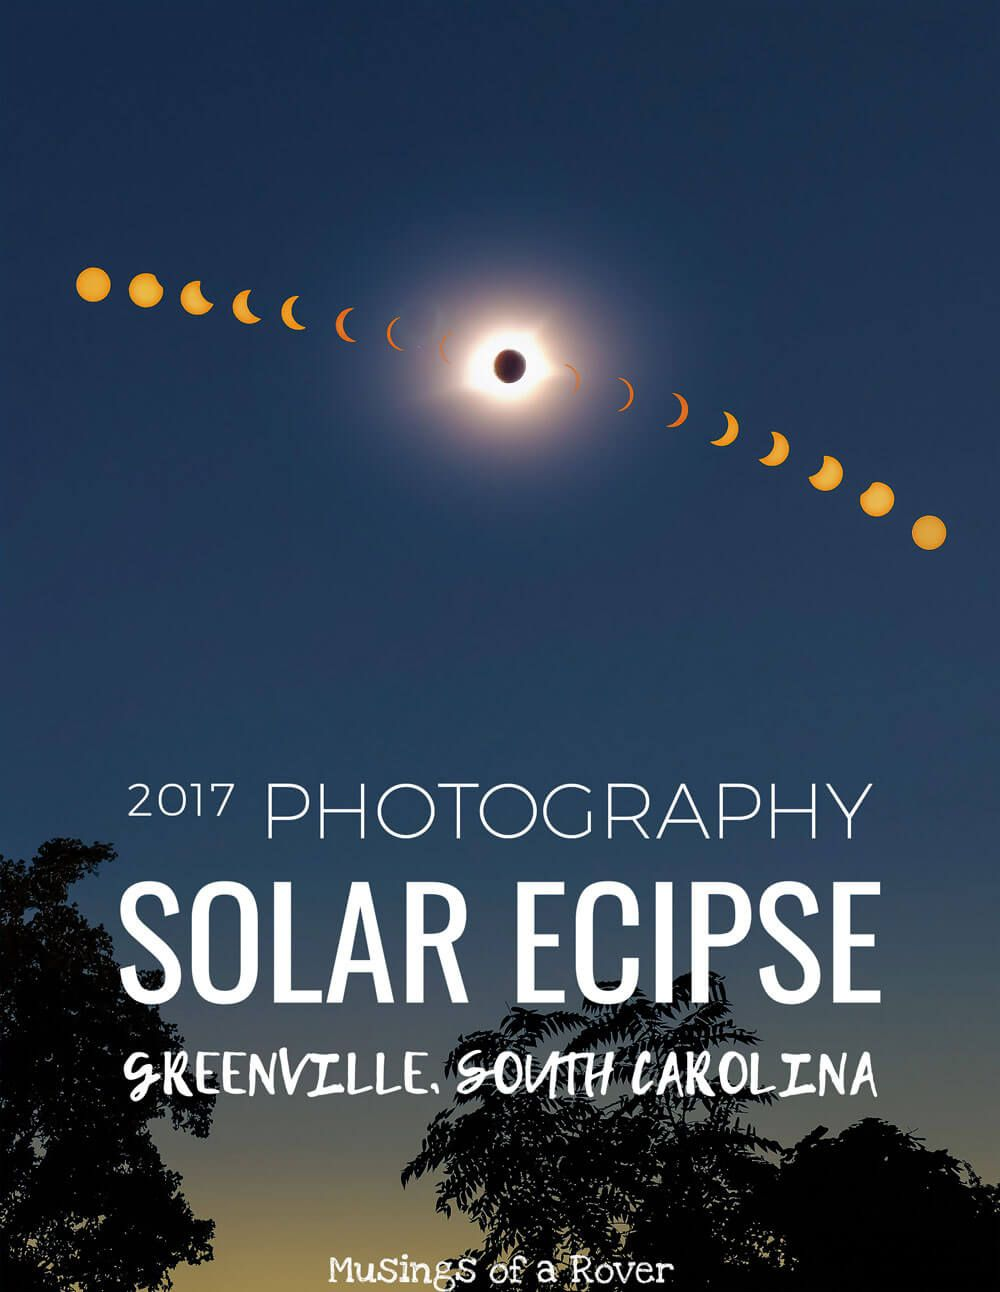 On August 21, 2017, a solar eclipse spanned the USA. From Oregon to South Carolina, it traveled. Here I've collected my best solar eclipse photography shots from Greenville, SC and compiled them. Use these to plan your future solar eclipse photos.